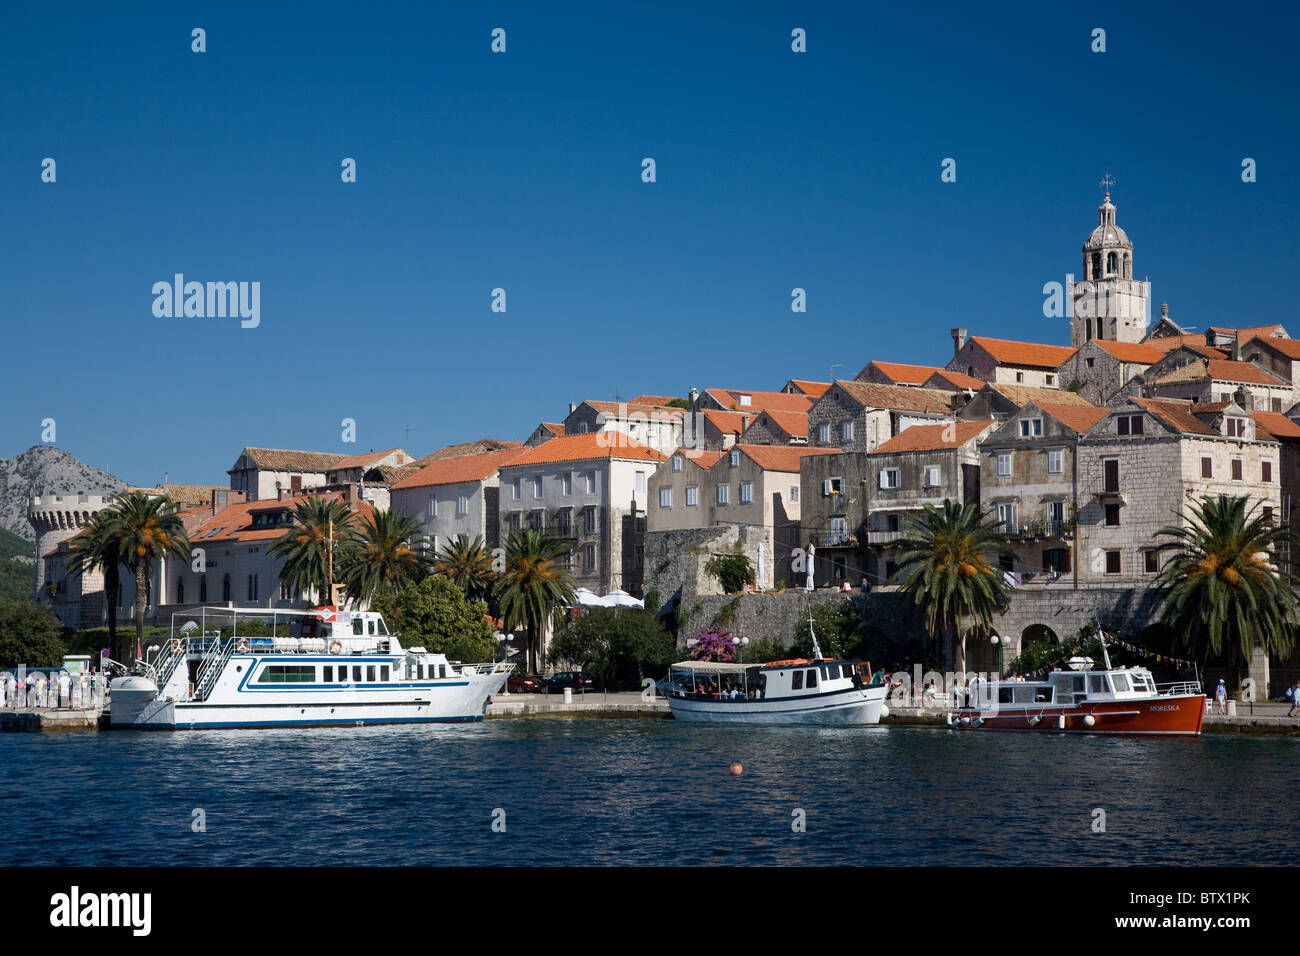 Korcula Croatia bay old town boats - Stock Image